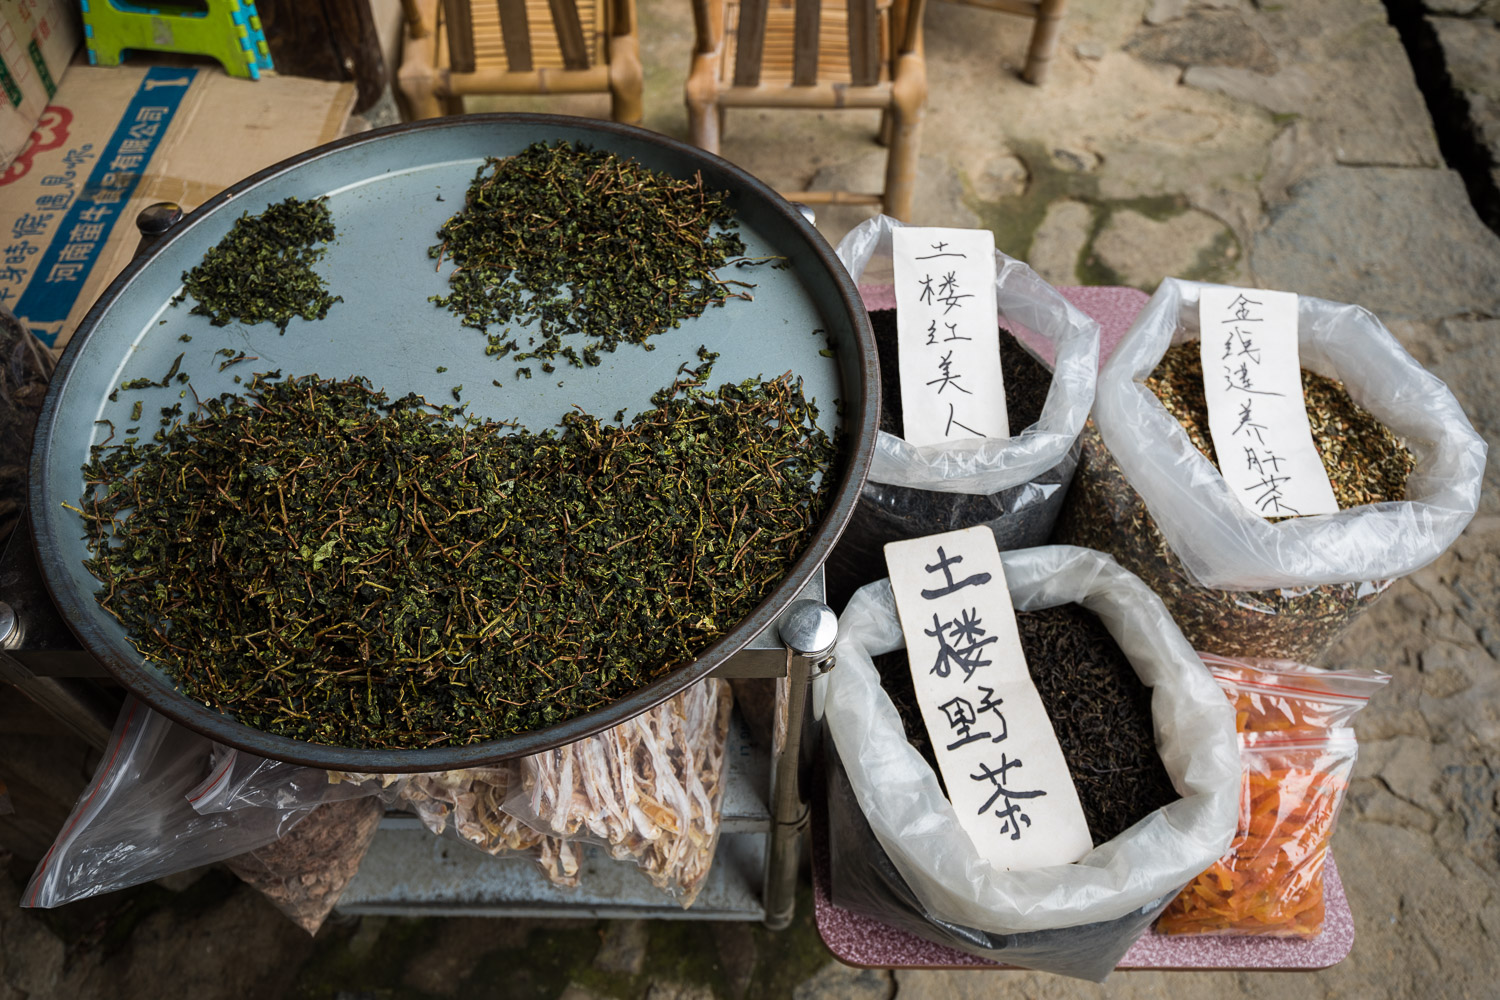 Picture of dried loose tea with Chinese sign.